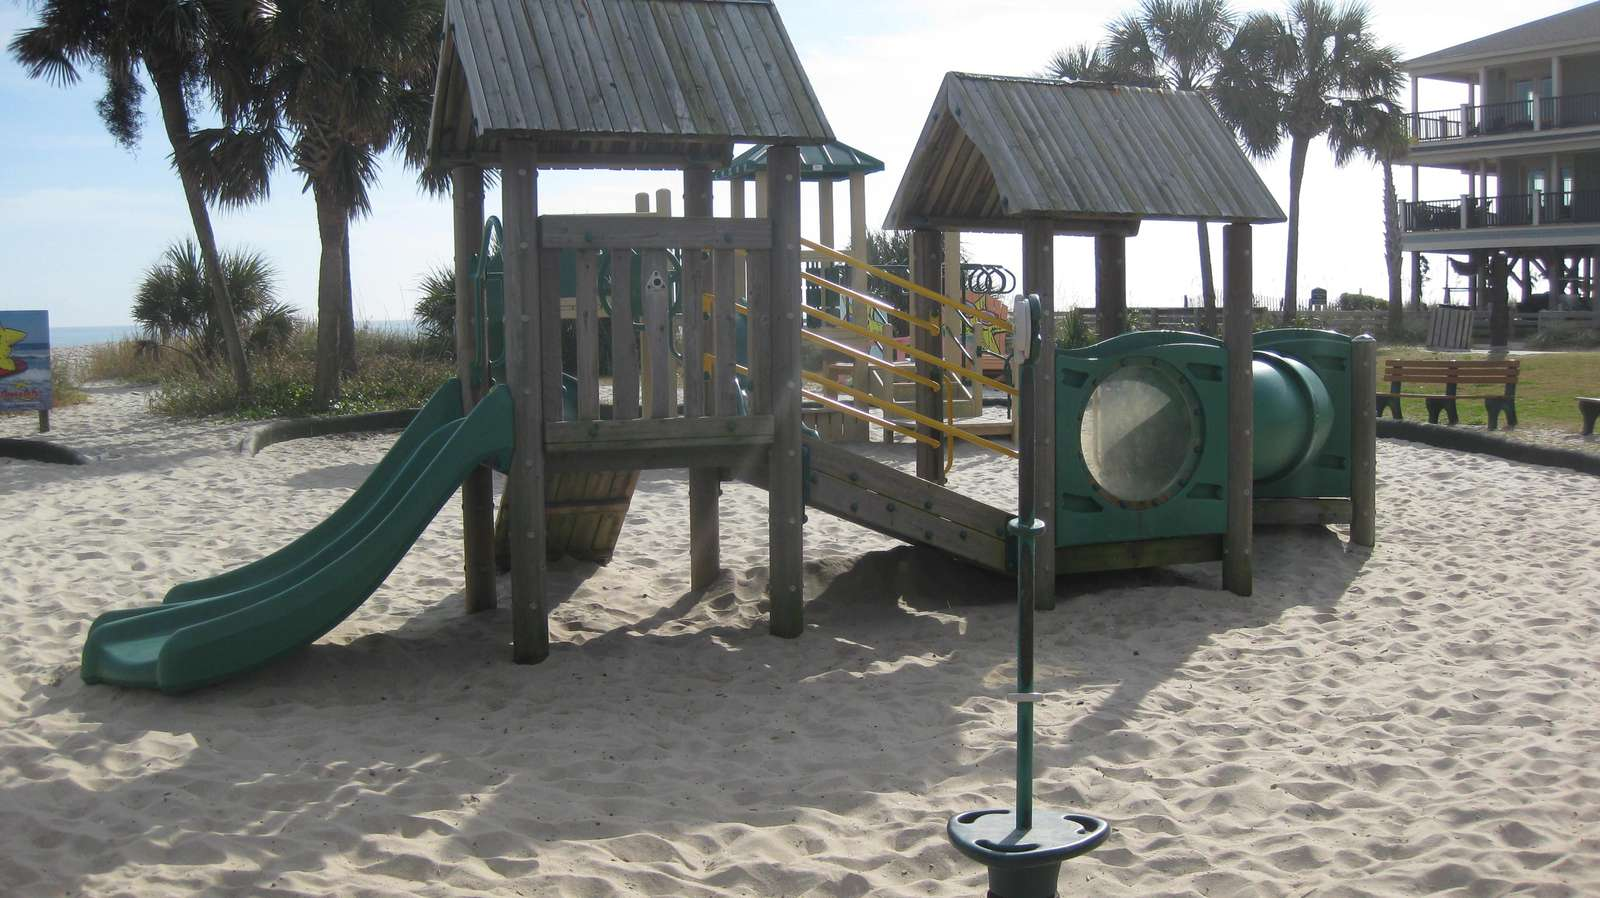 One of two playgrounds